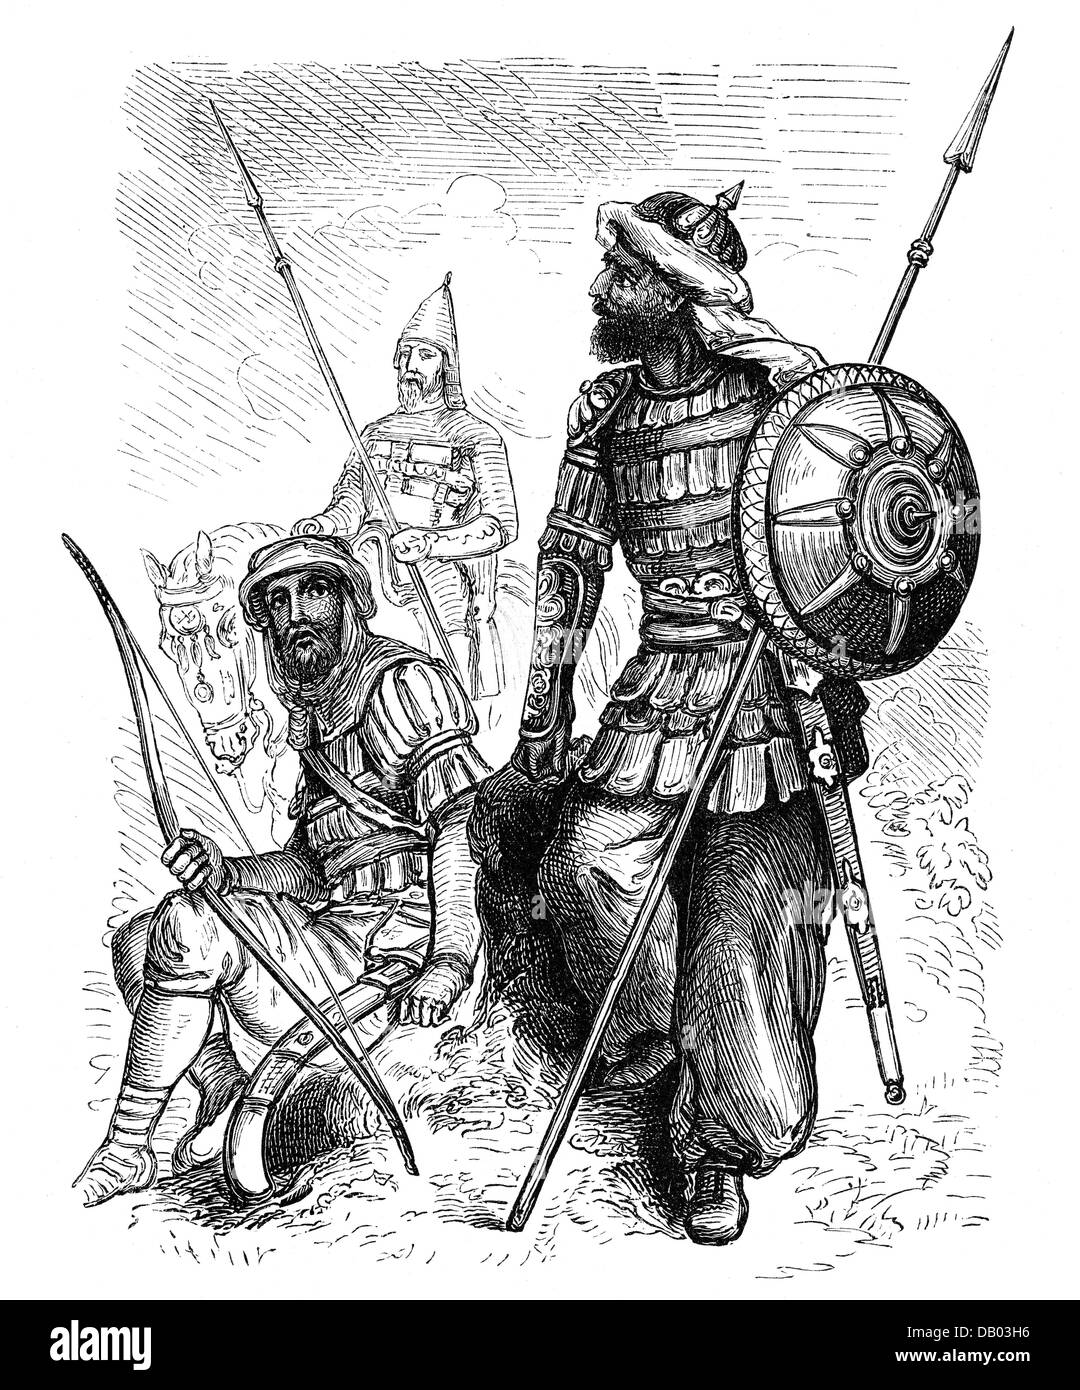 military, Middle Ages, Saracen warriors, wood engraving, 19th century, Saracens, Saracen, fighter, soldier, soldiers, Stock Photo